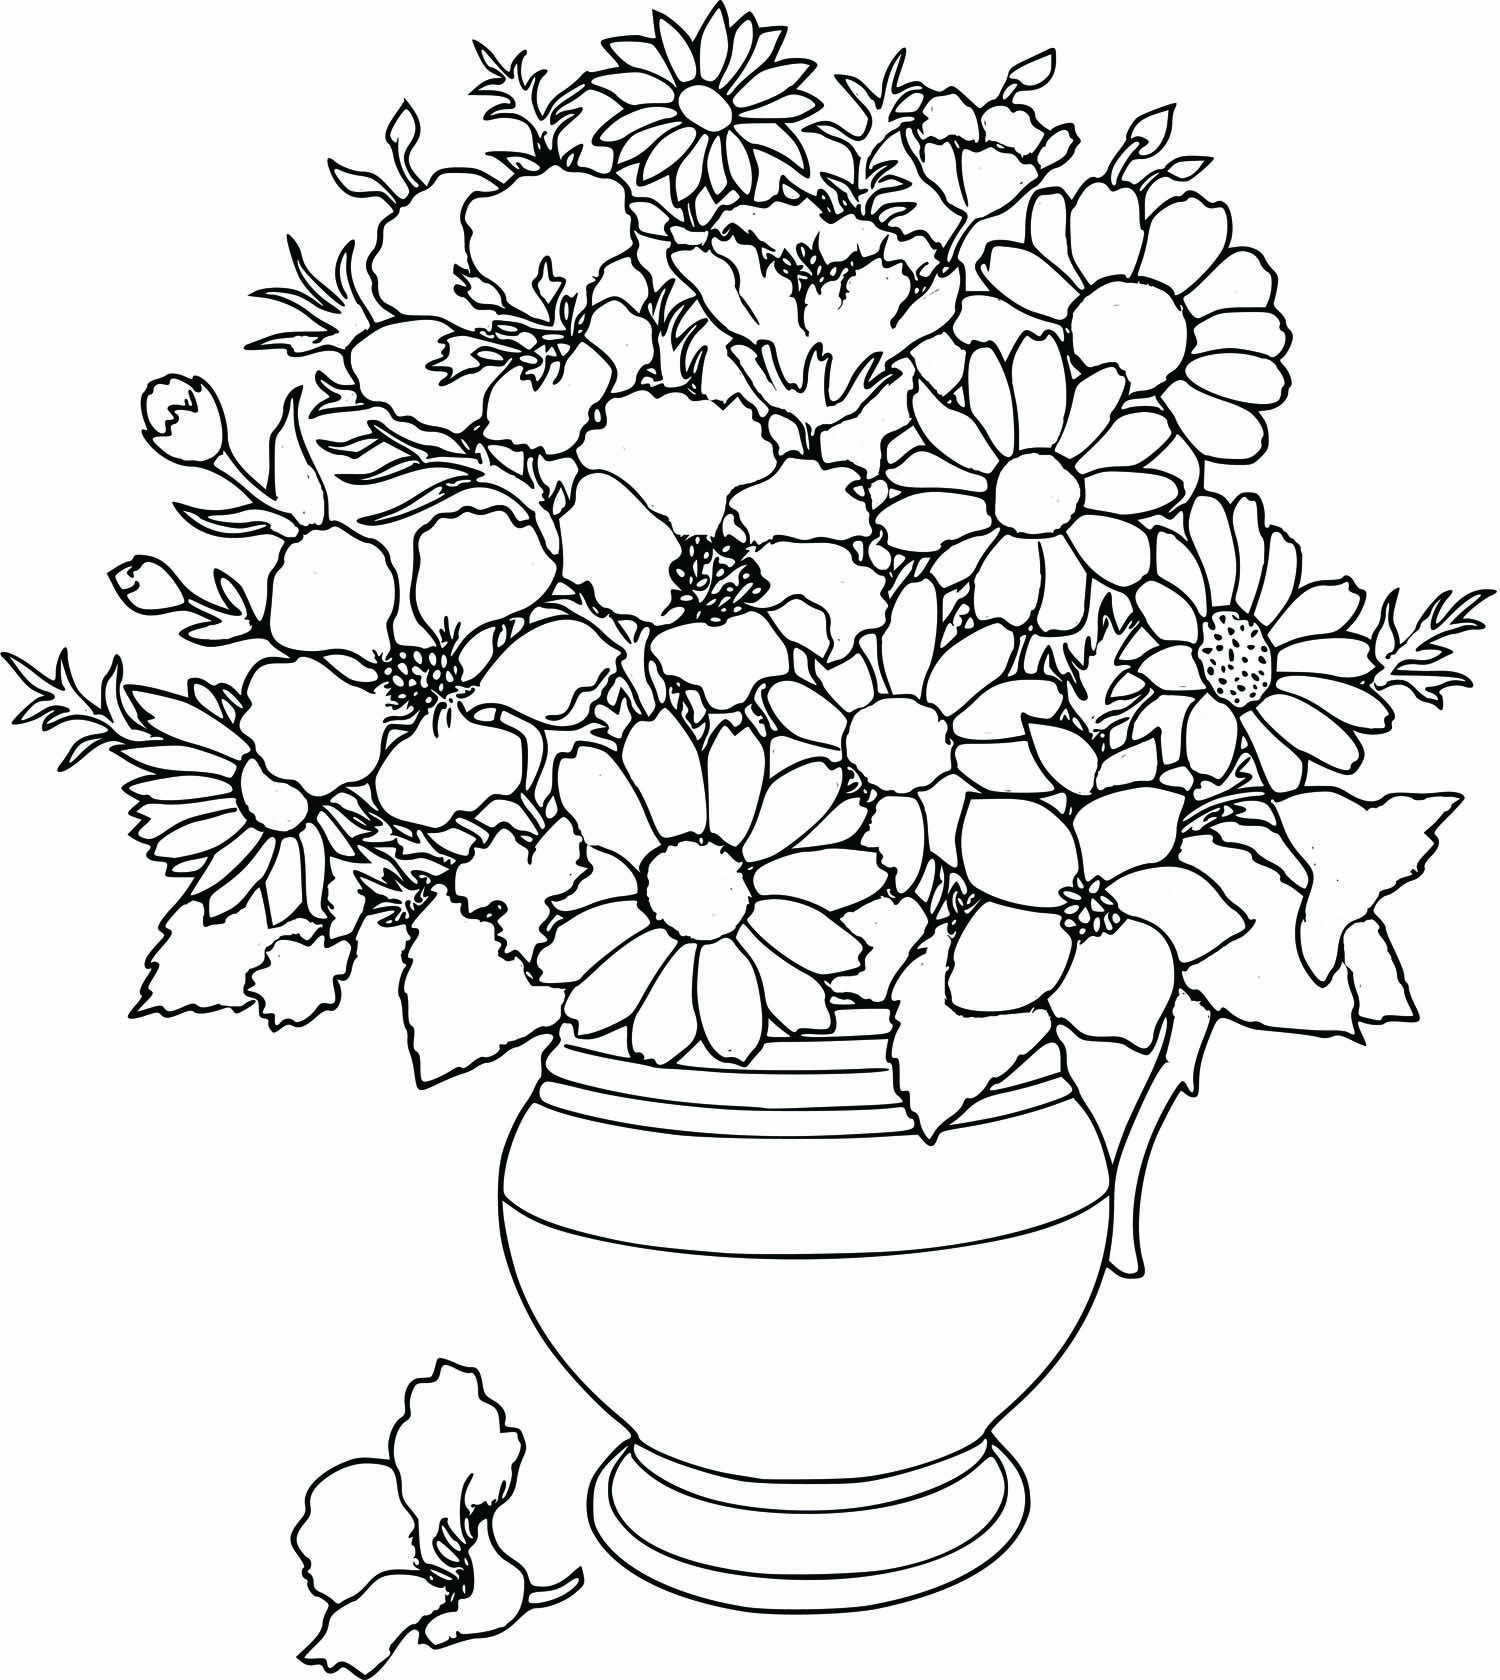 colouring pages detailed flower